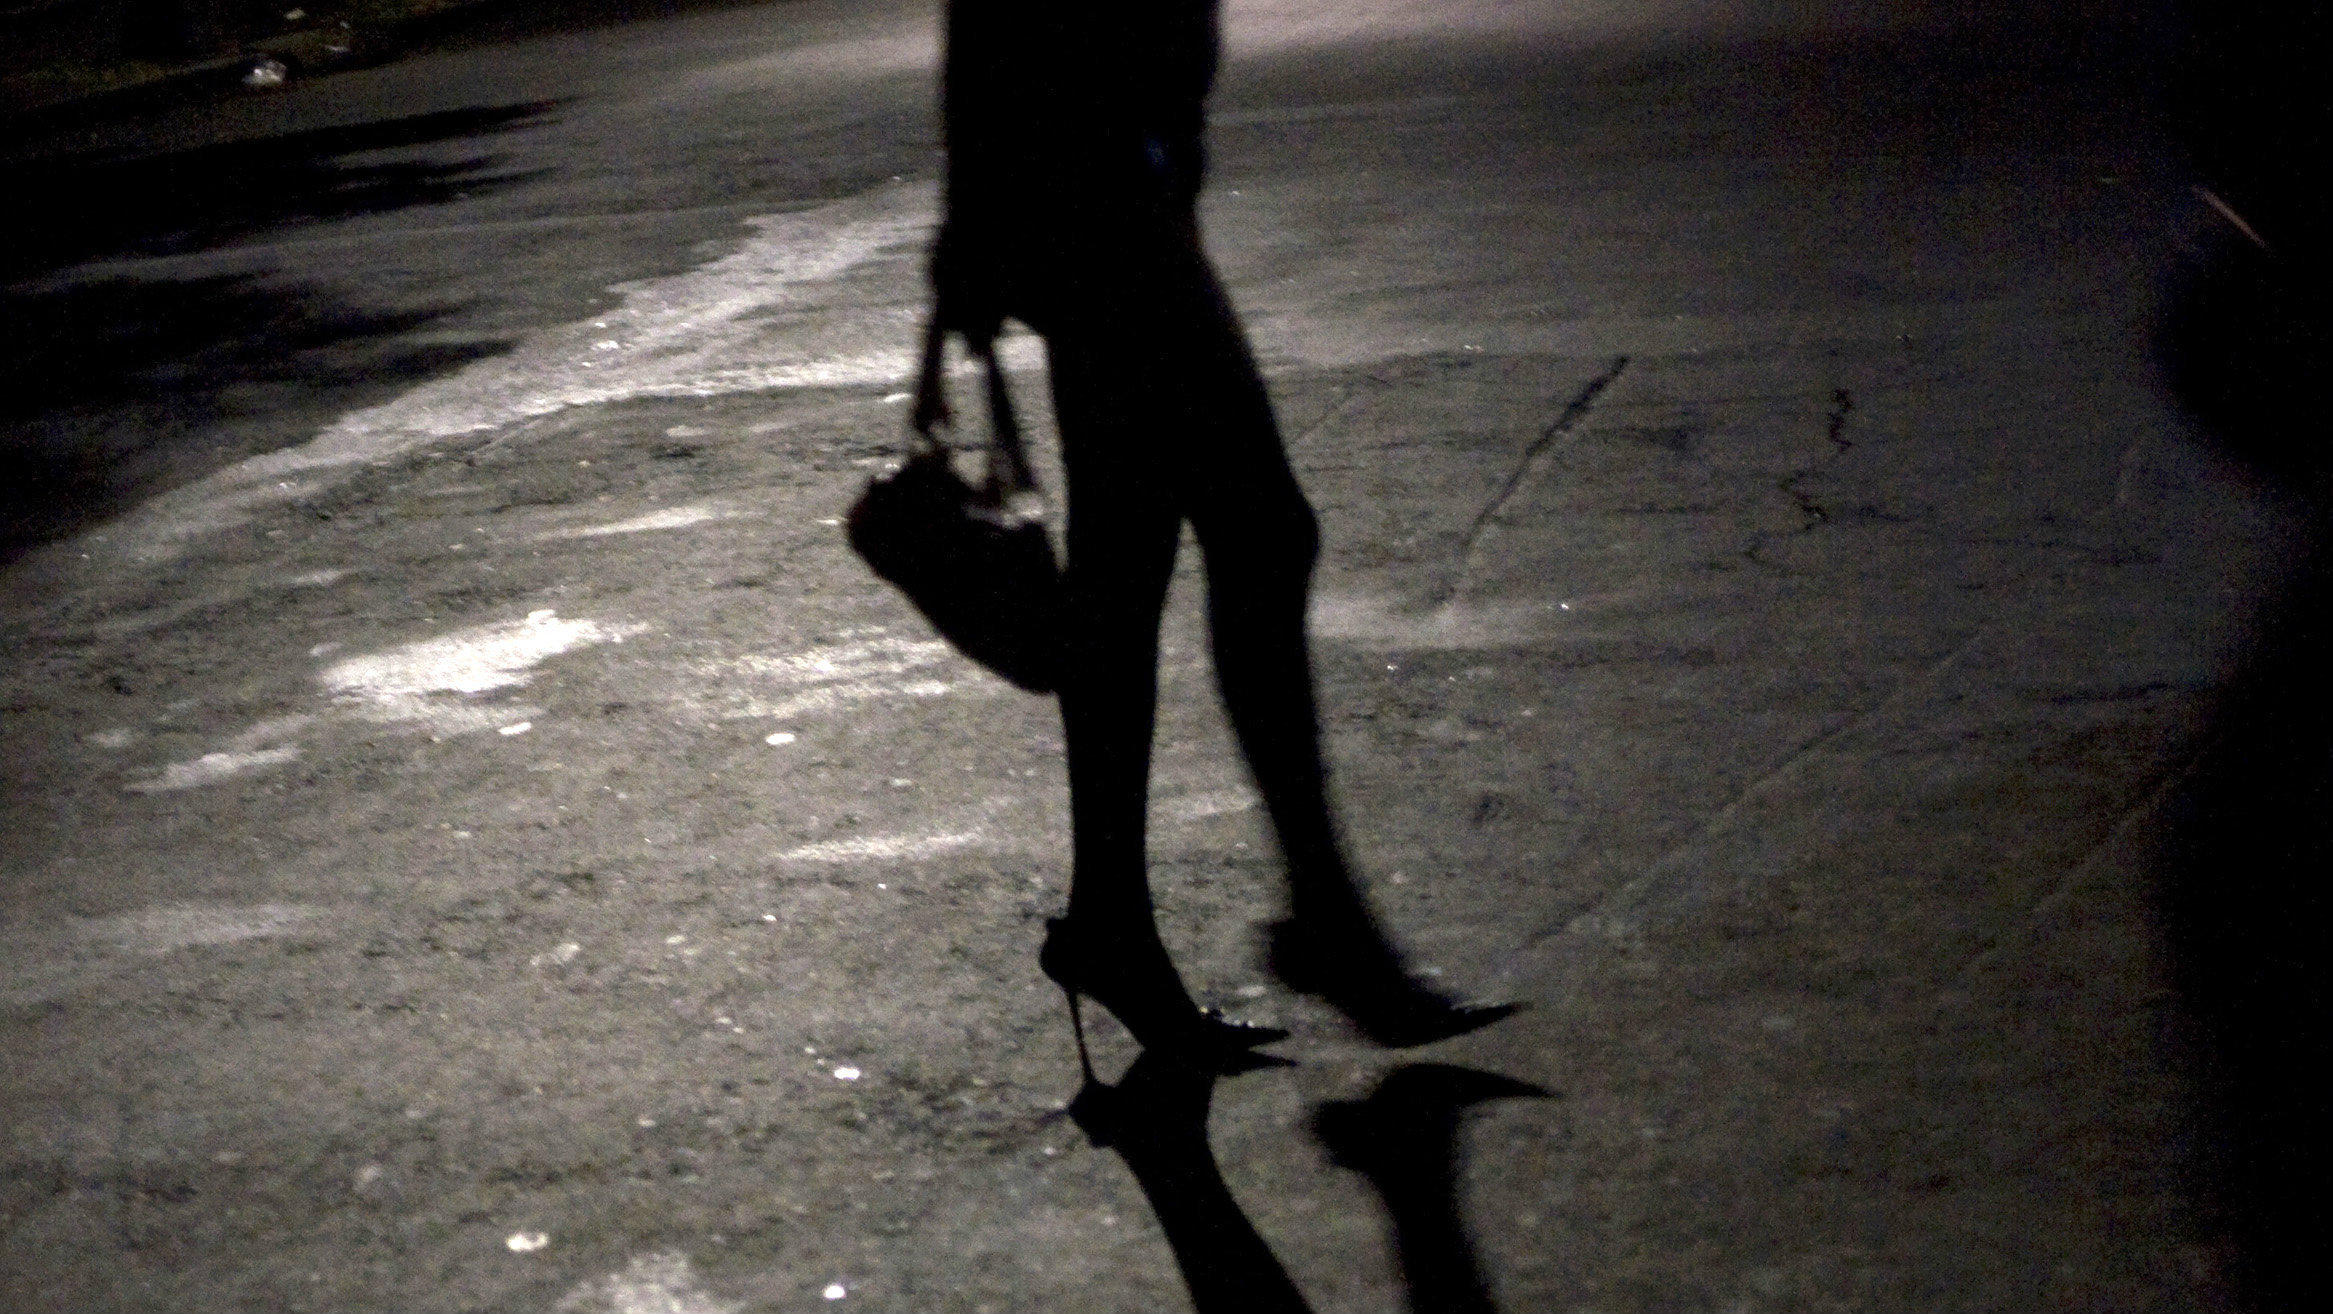 A prostitute crosses the street waiting to be picked up by customers in passing cars.